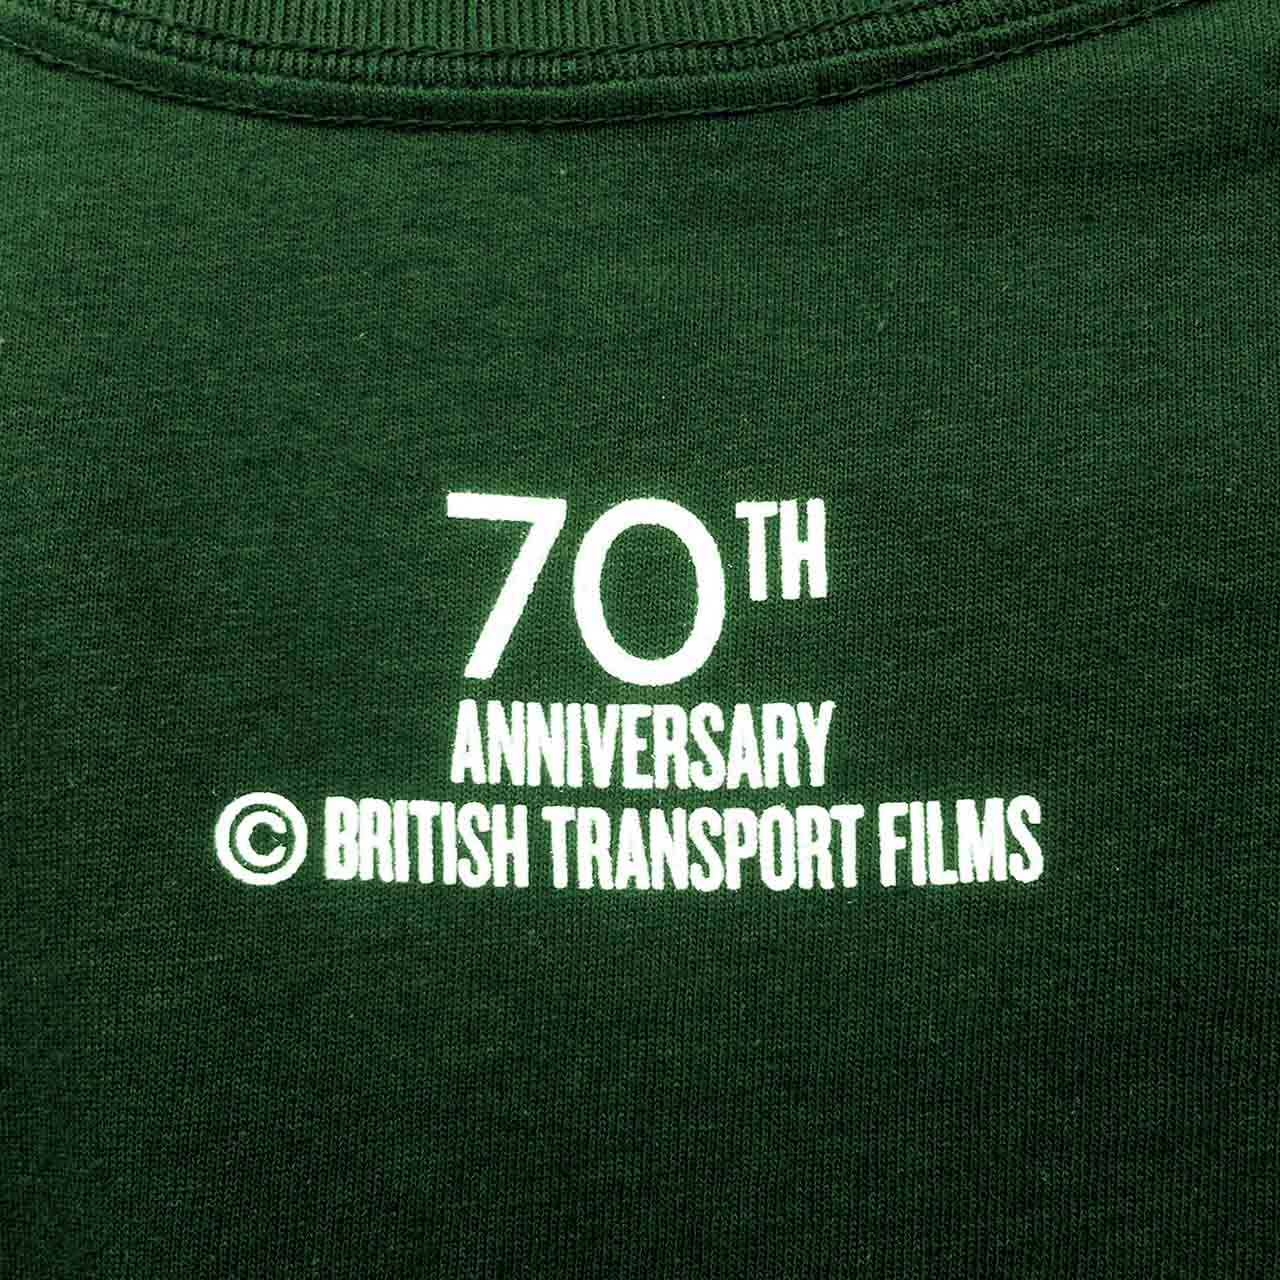 Buy British Transport Films 70th Anniversary T-shirt (Forest Green)